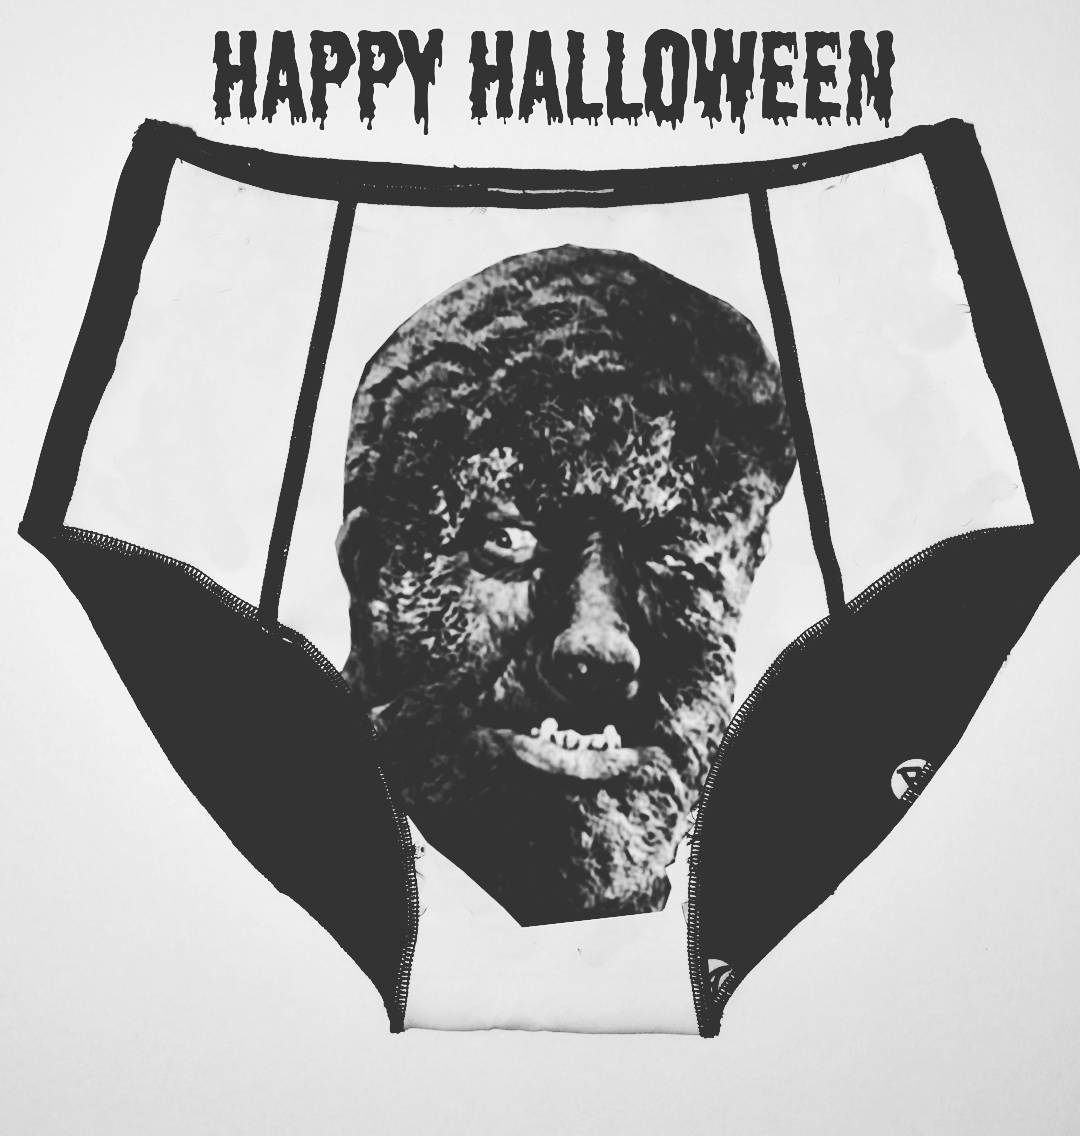 Happy Halloween from #AkelaSurf family